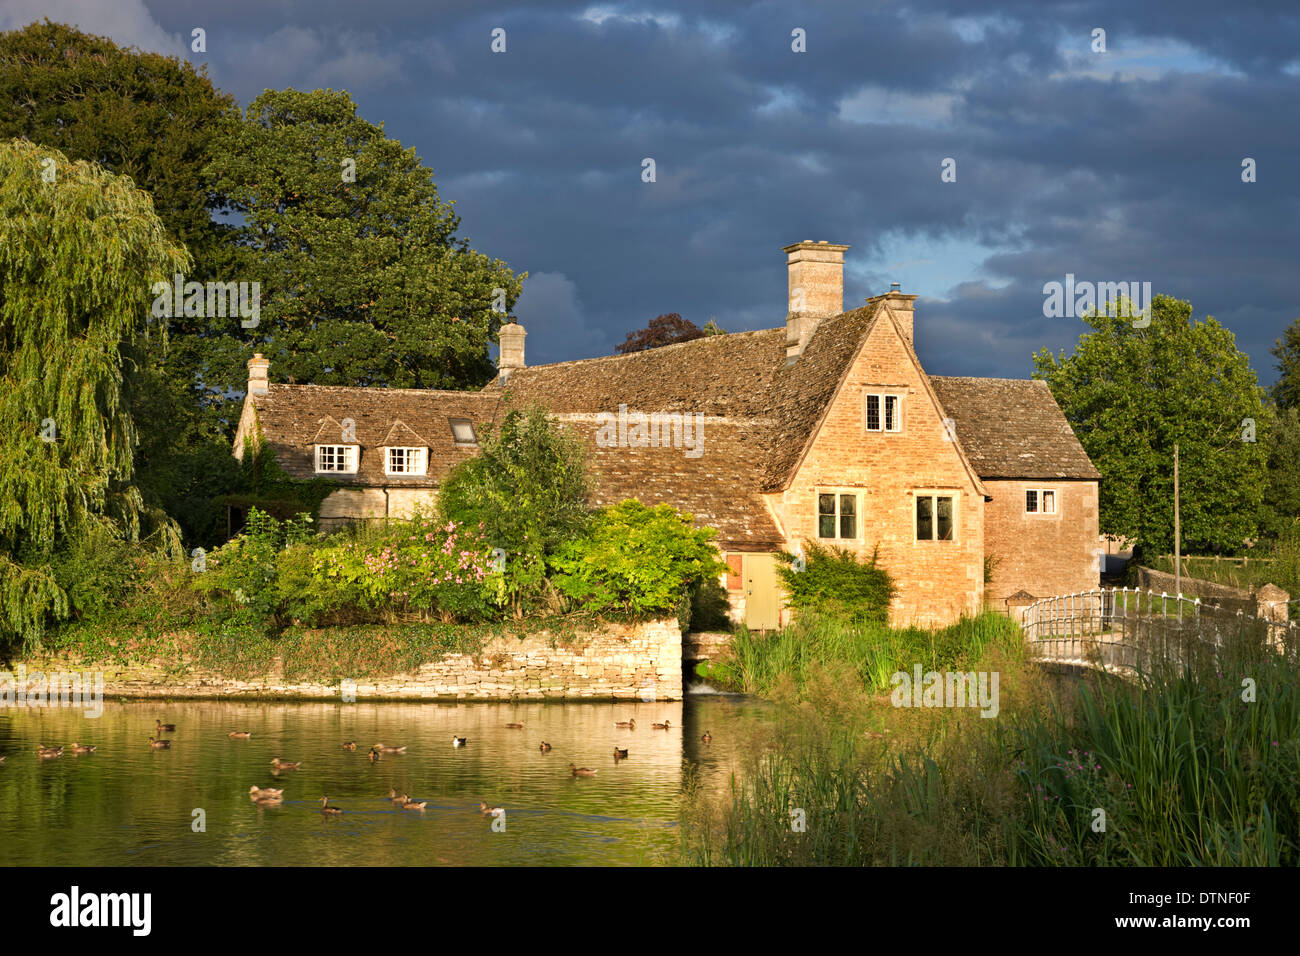 Picturesque Fairford Mill in the Cotswolds, Gloucestershire, England. Summer (July) 2010. - Stock Image